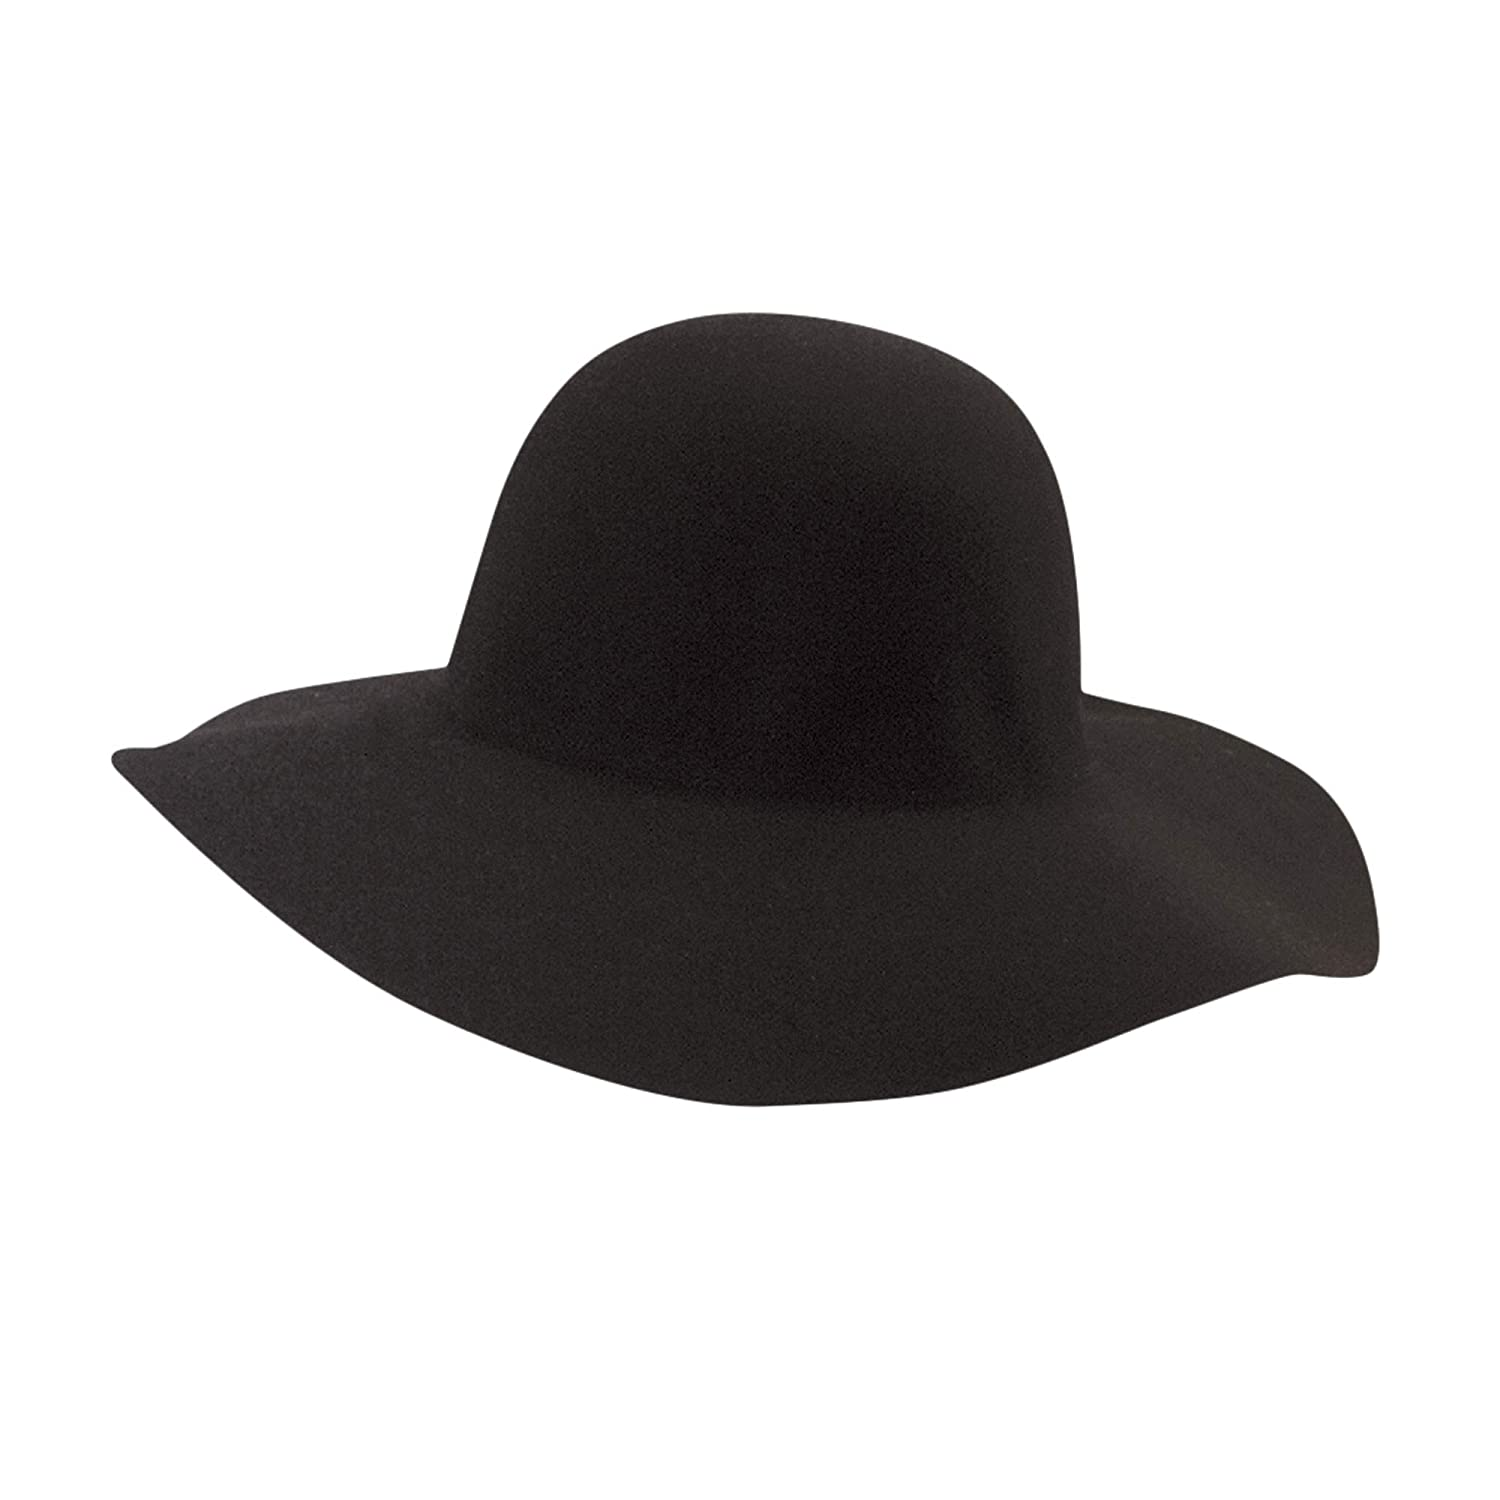 09dcbb0324af17 SCALA Women's Big Brim Wool Felt Floppy Hat (Black) at Amazon Women's  Clothing store: